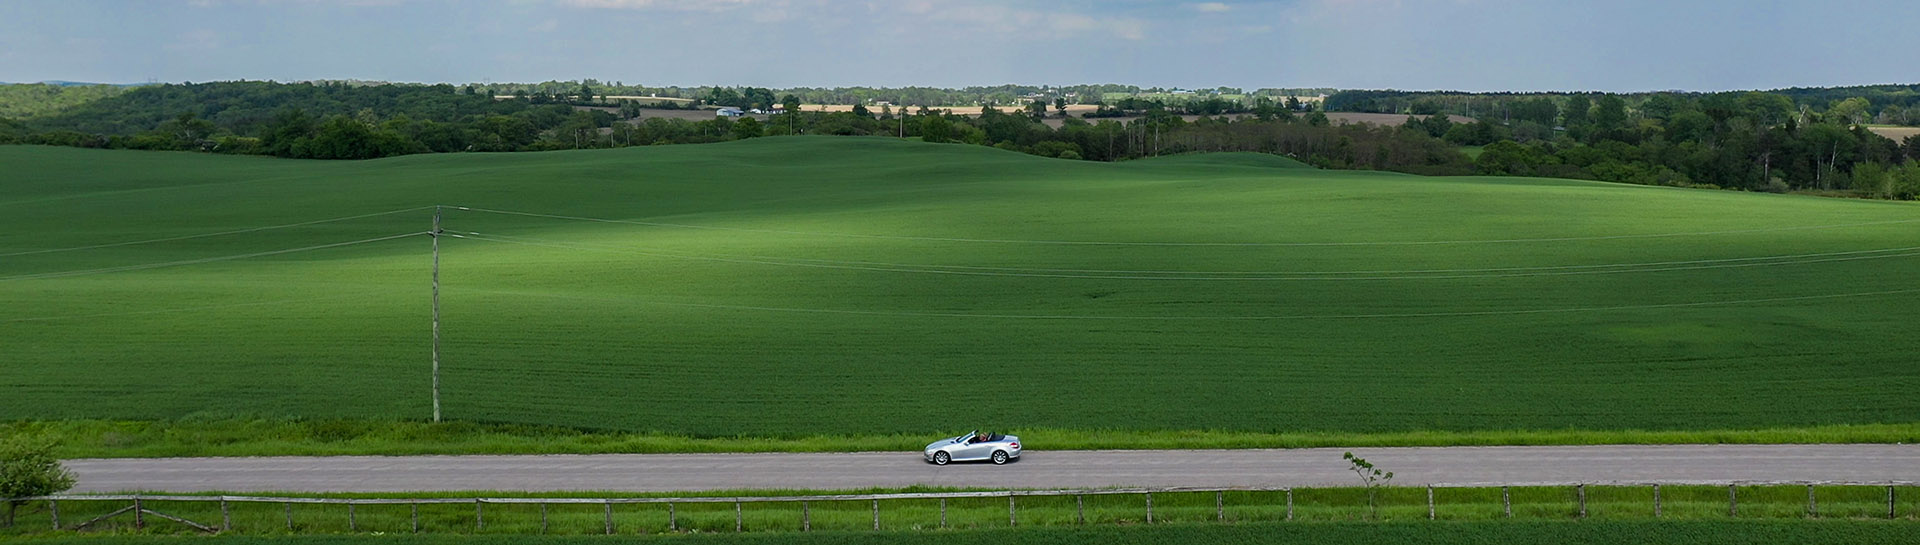 Drone view of car driving down road in front of green fields